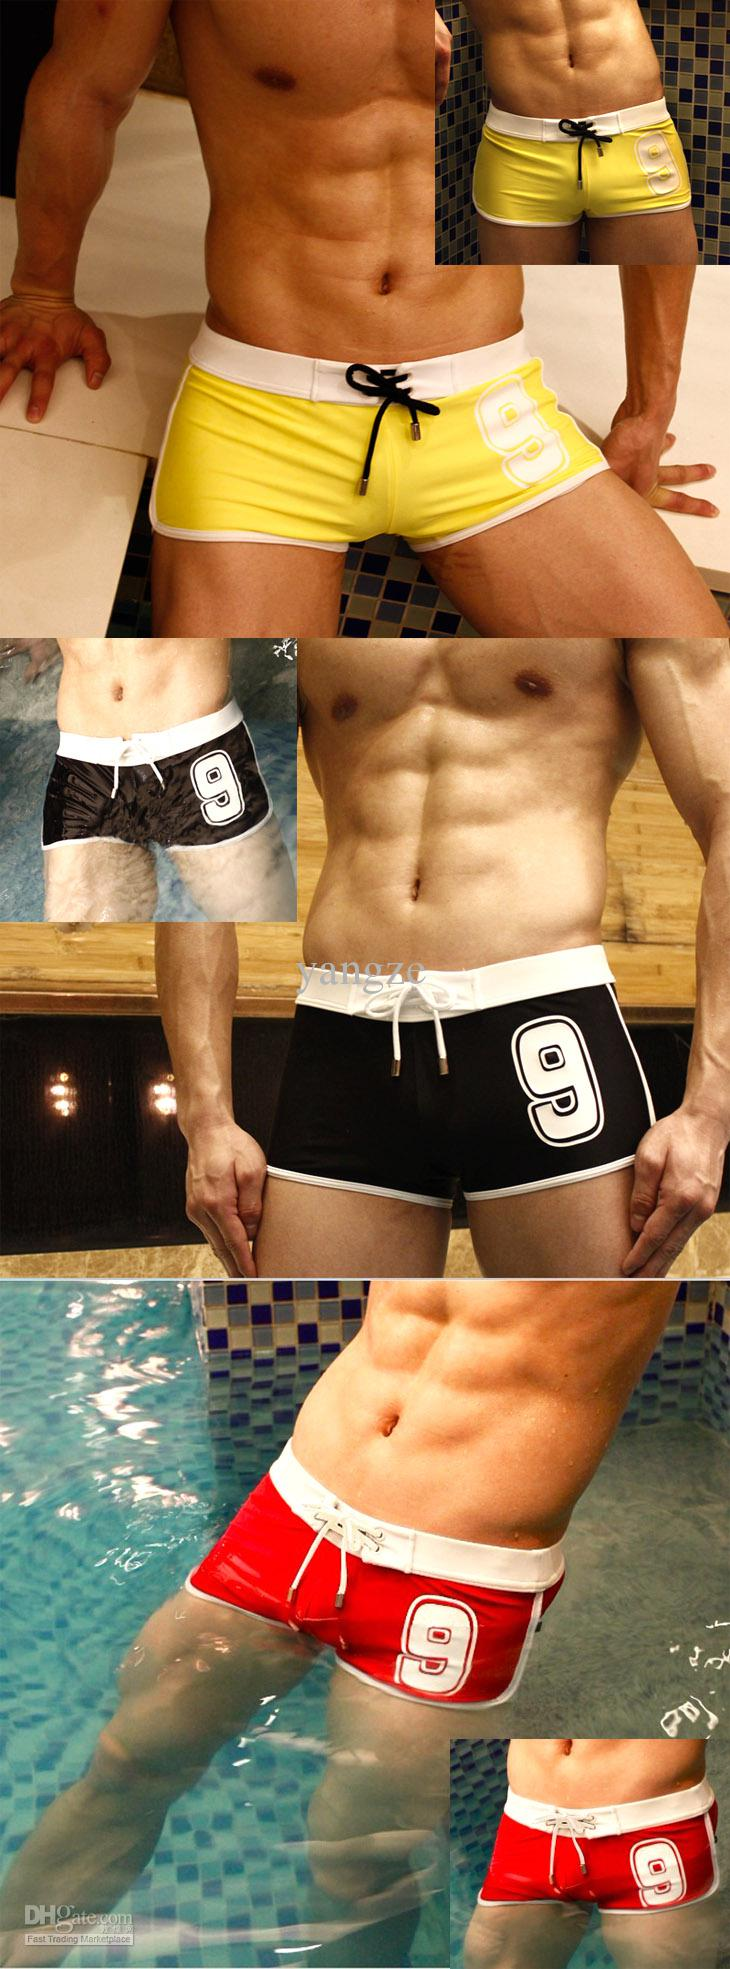 Superbody Hot Sexy Men's Swimwear No.9 Lucky Number with Tie Waist Mesh Breathable Swim Trunks Shorts Boxers for Men P9009 Beachwear